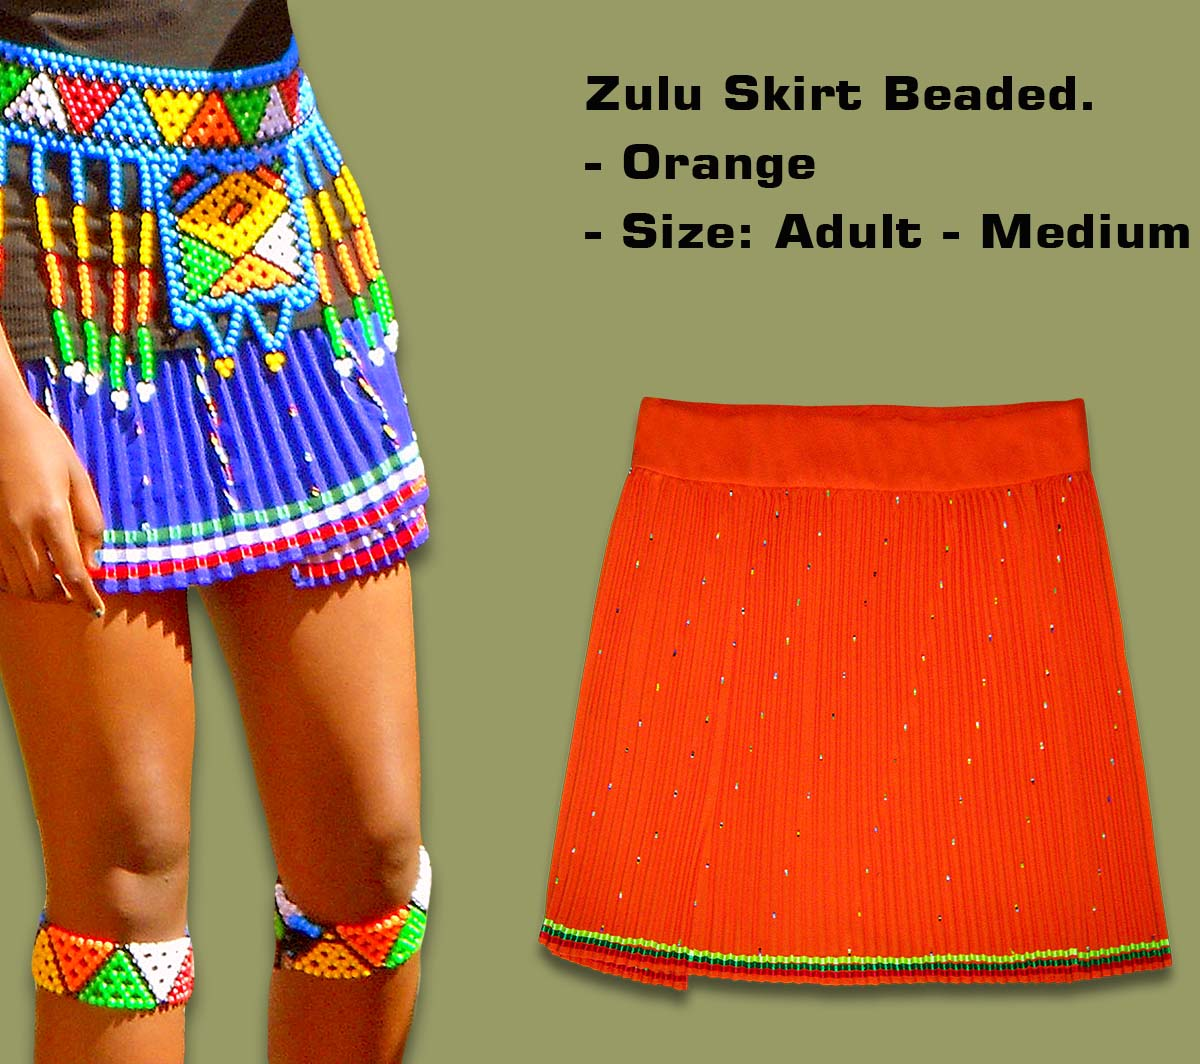 Beaded Zulu Skirt Orange Adult Medium